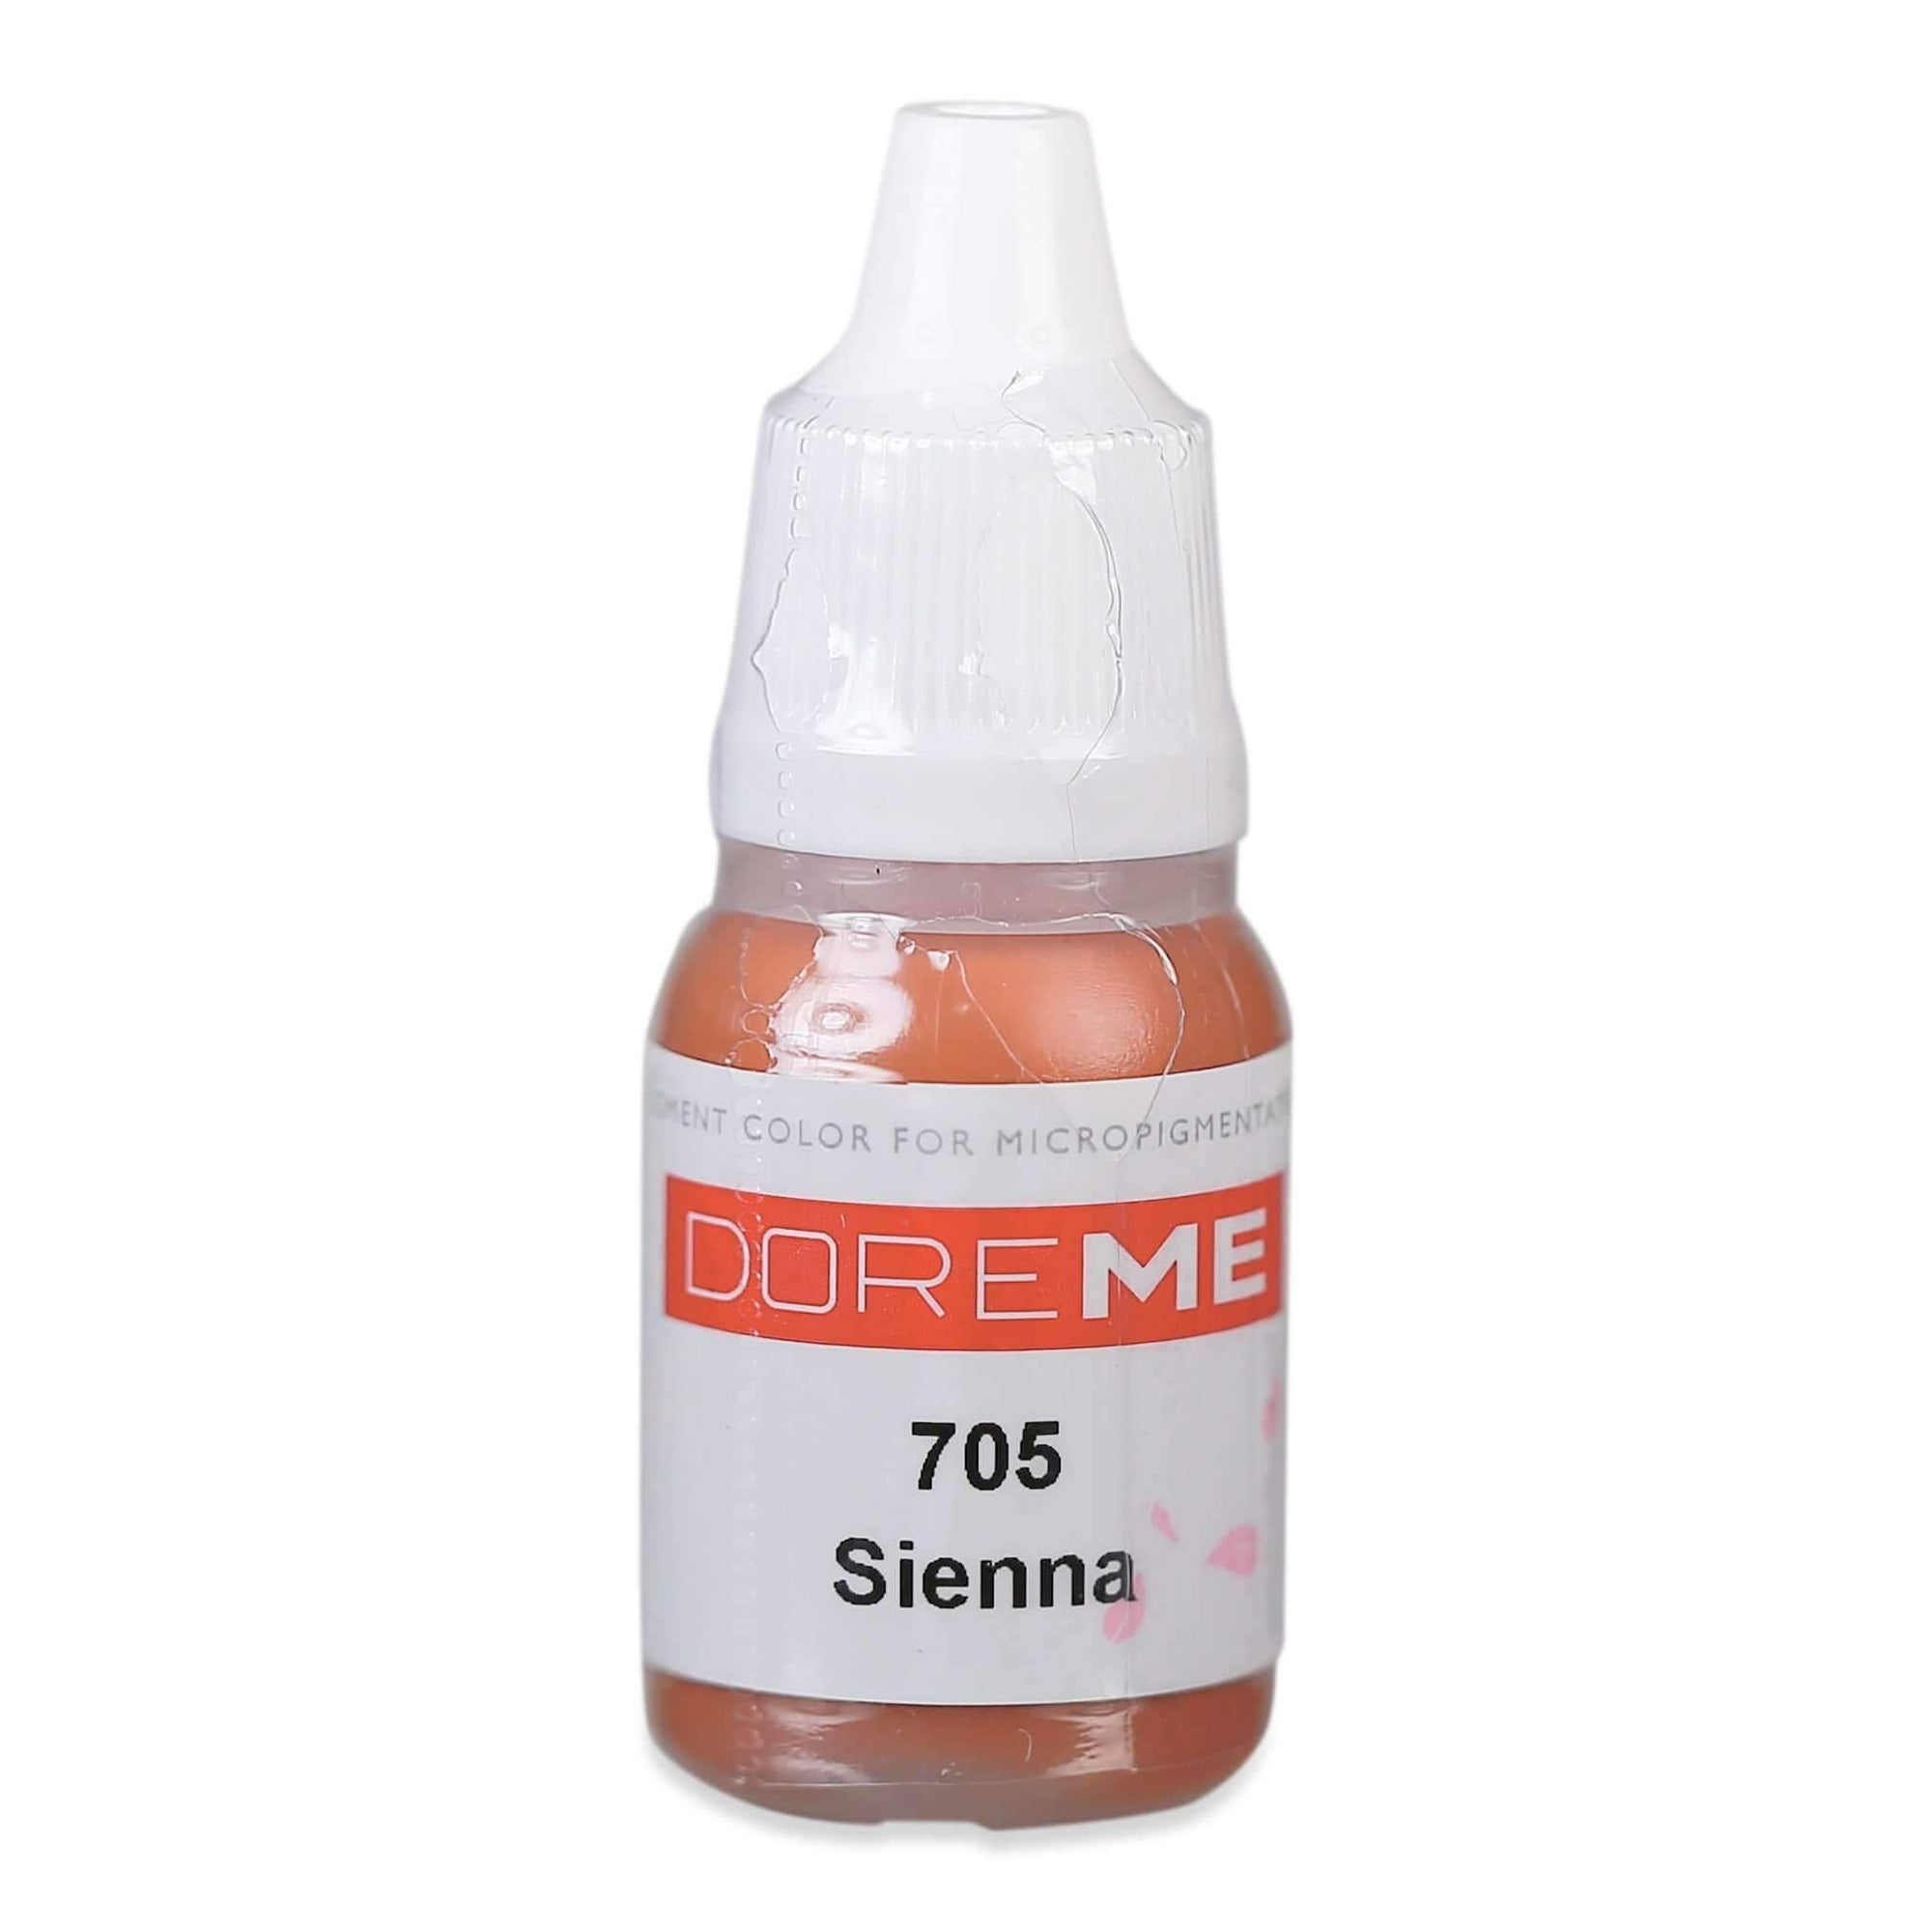 Doreme Organic Permanent Makeup Pigments UK Supplier Distributor Beautiful Ink Online Shop